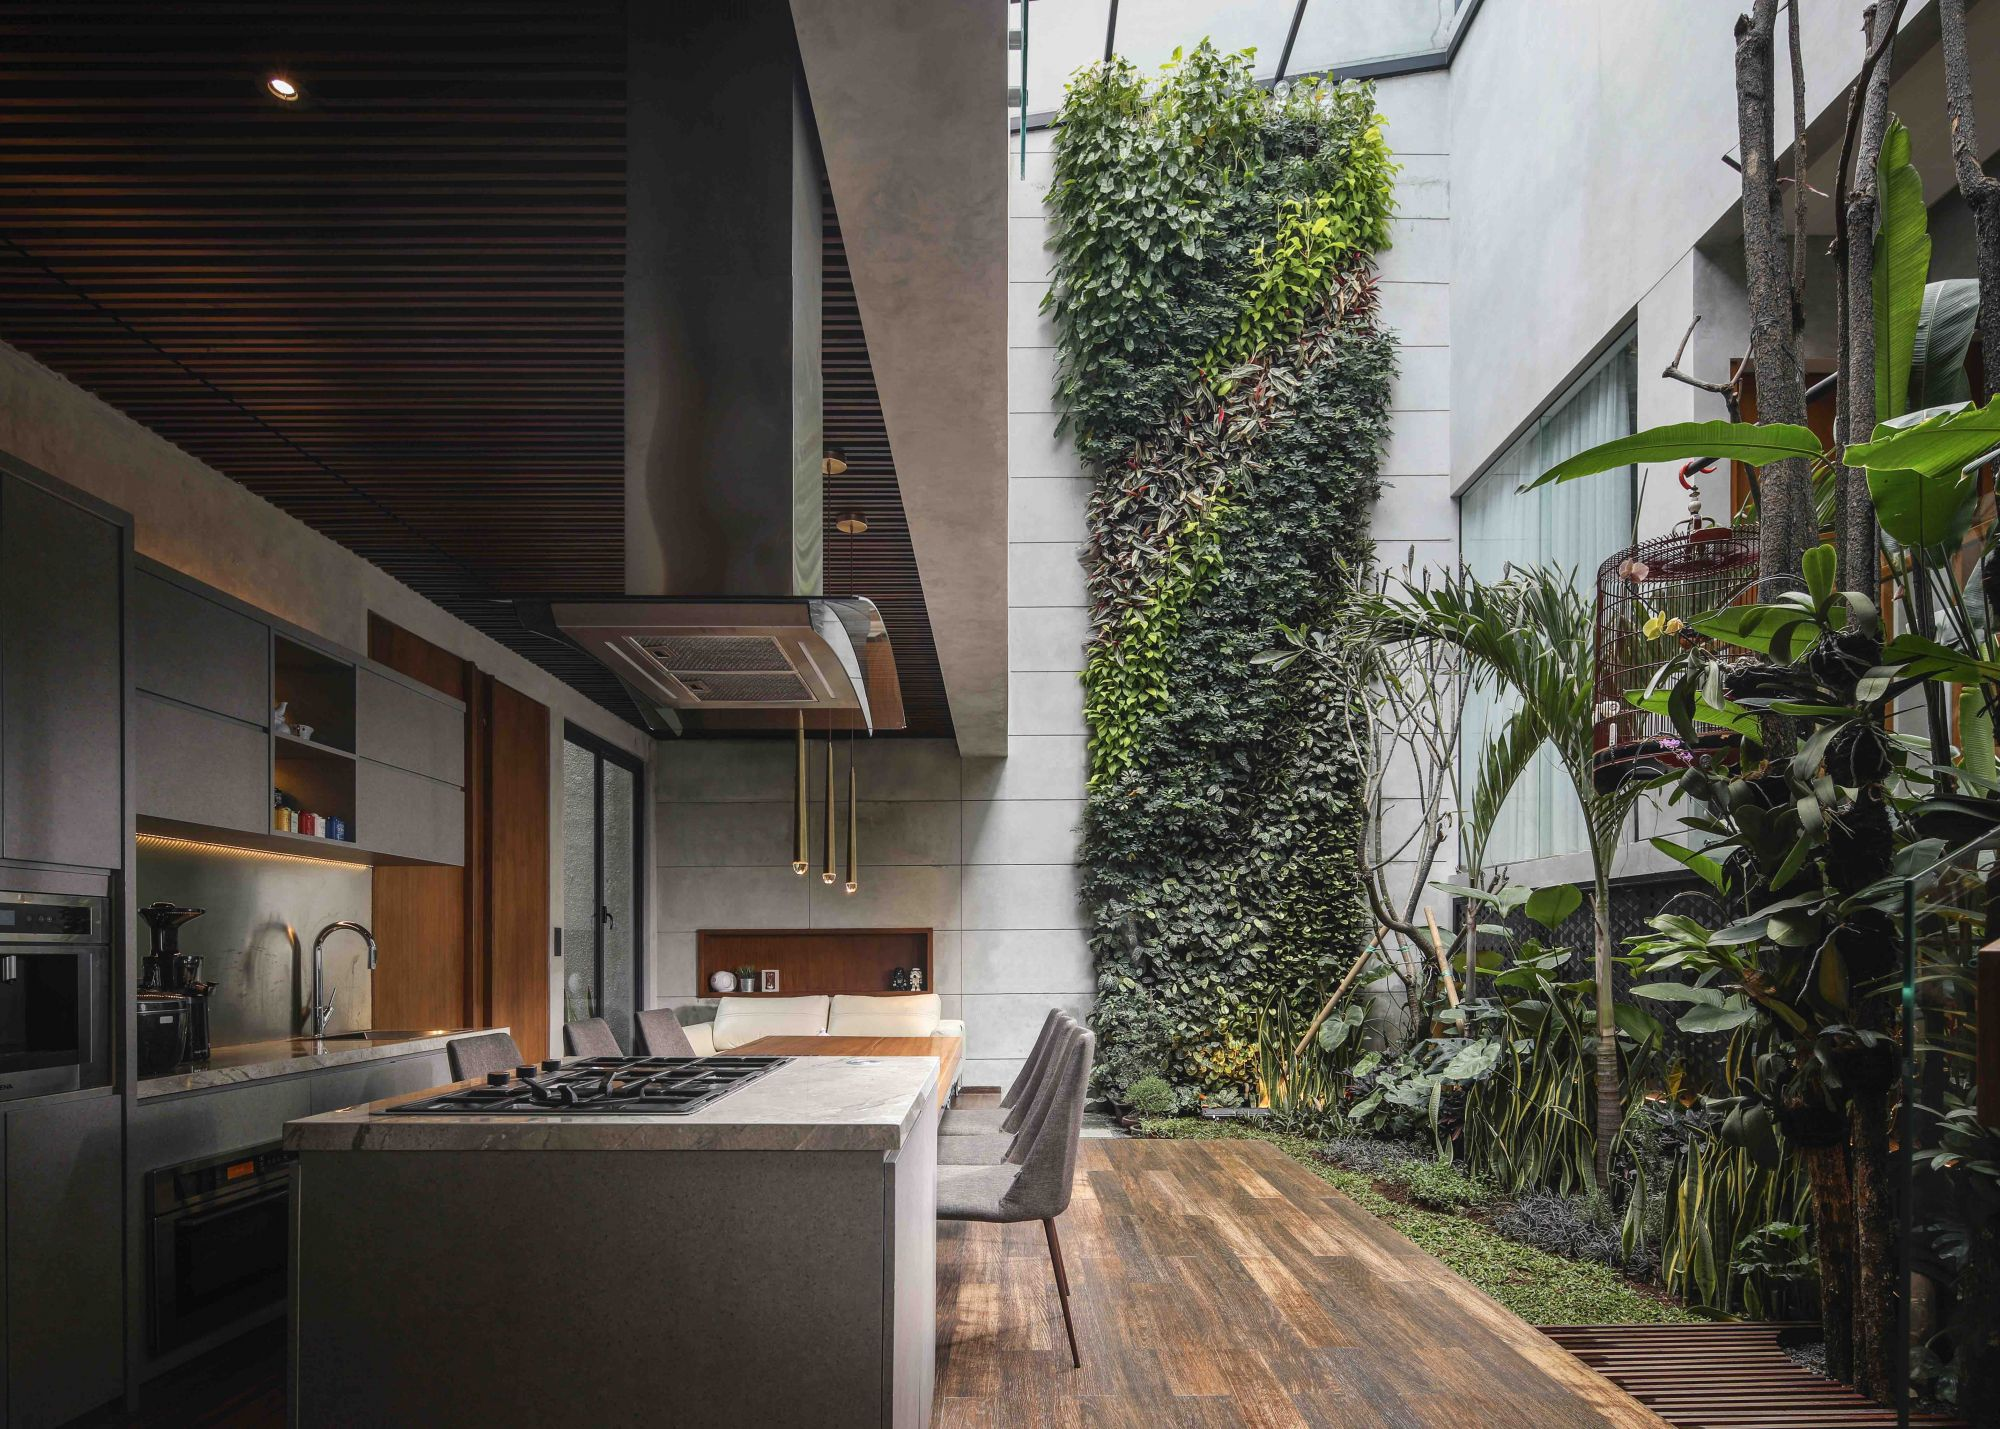 The Lumière House by Studio Avana features a lush indoor garden next to the kitchen